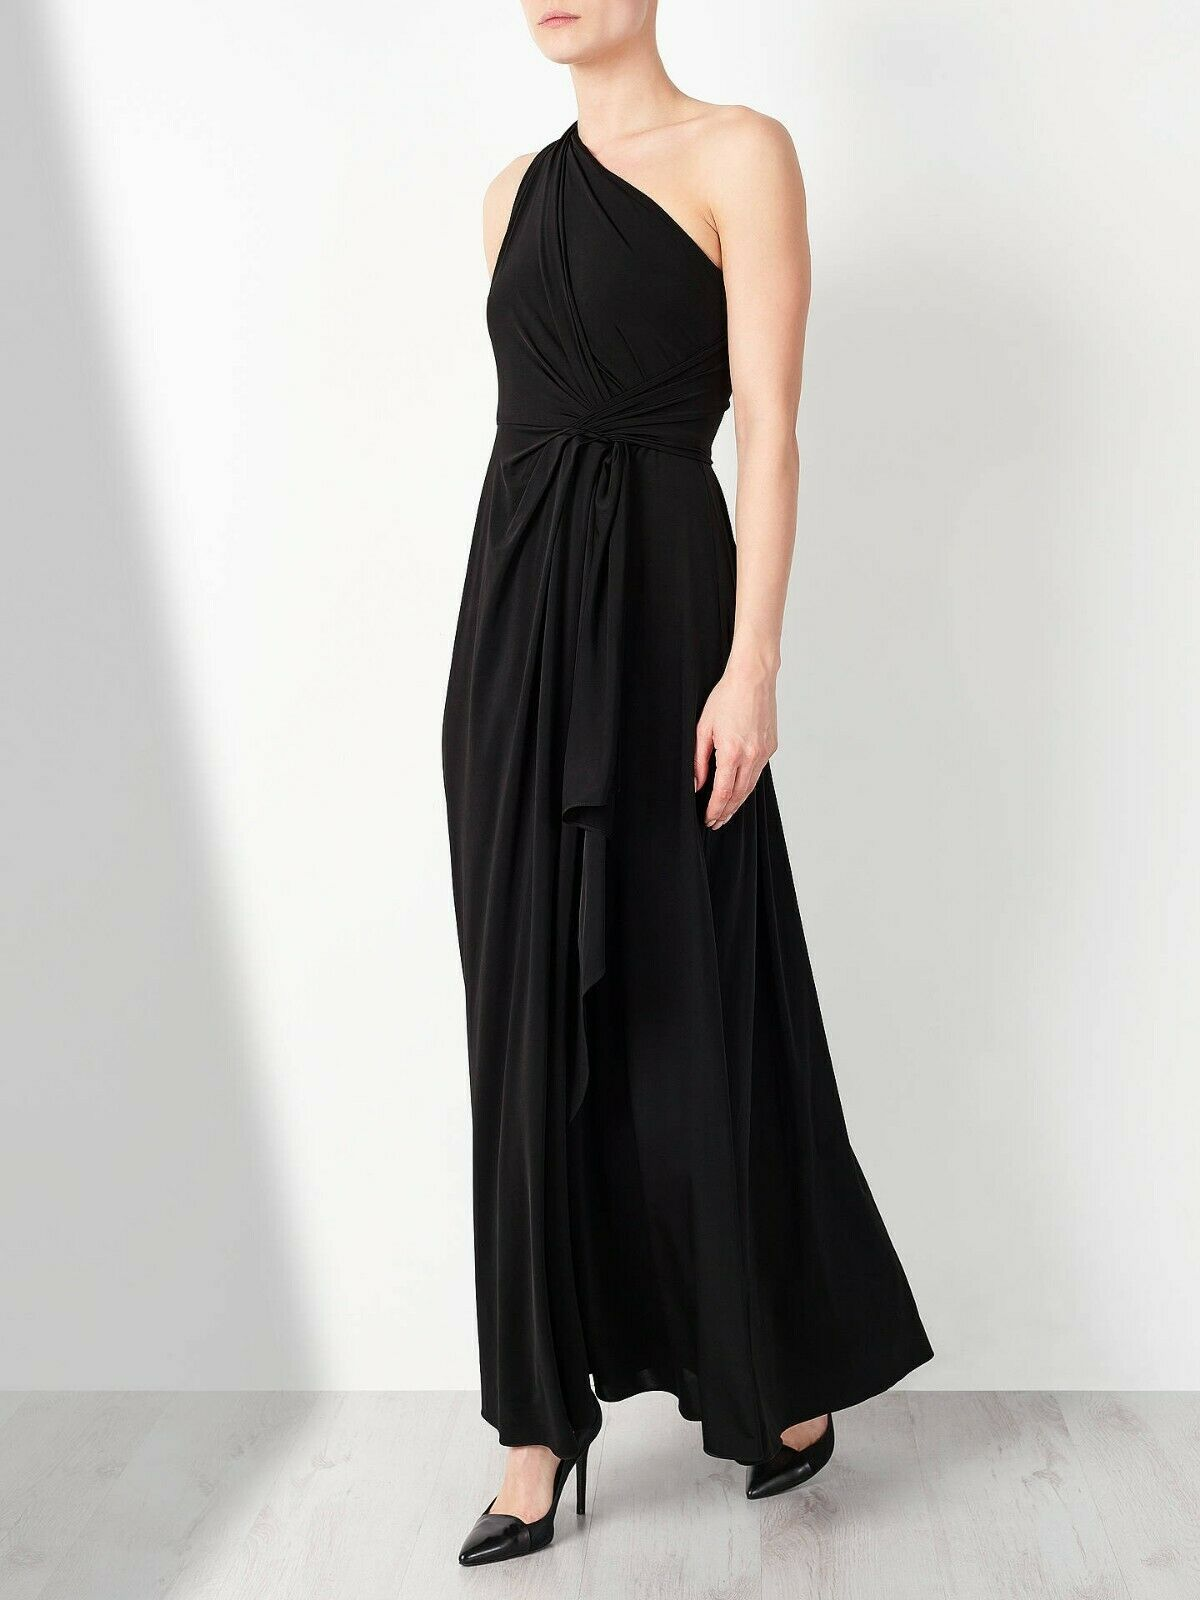 John Lewis schwarz One Shoulder Long Dress Größe Brand New RRP